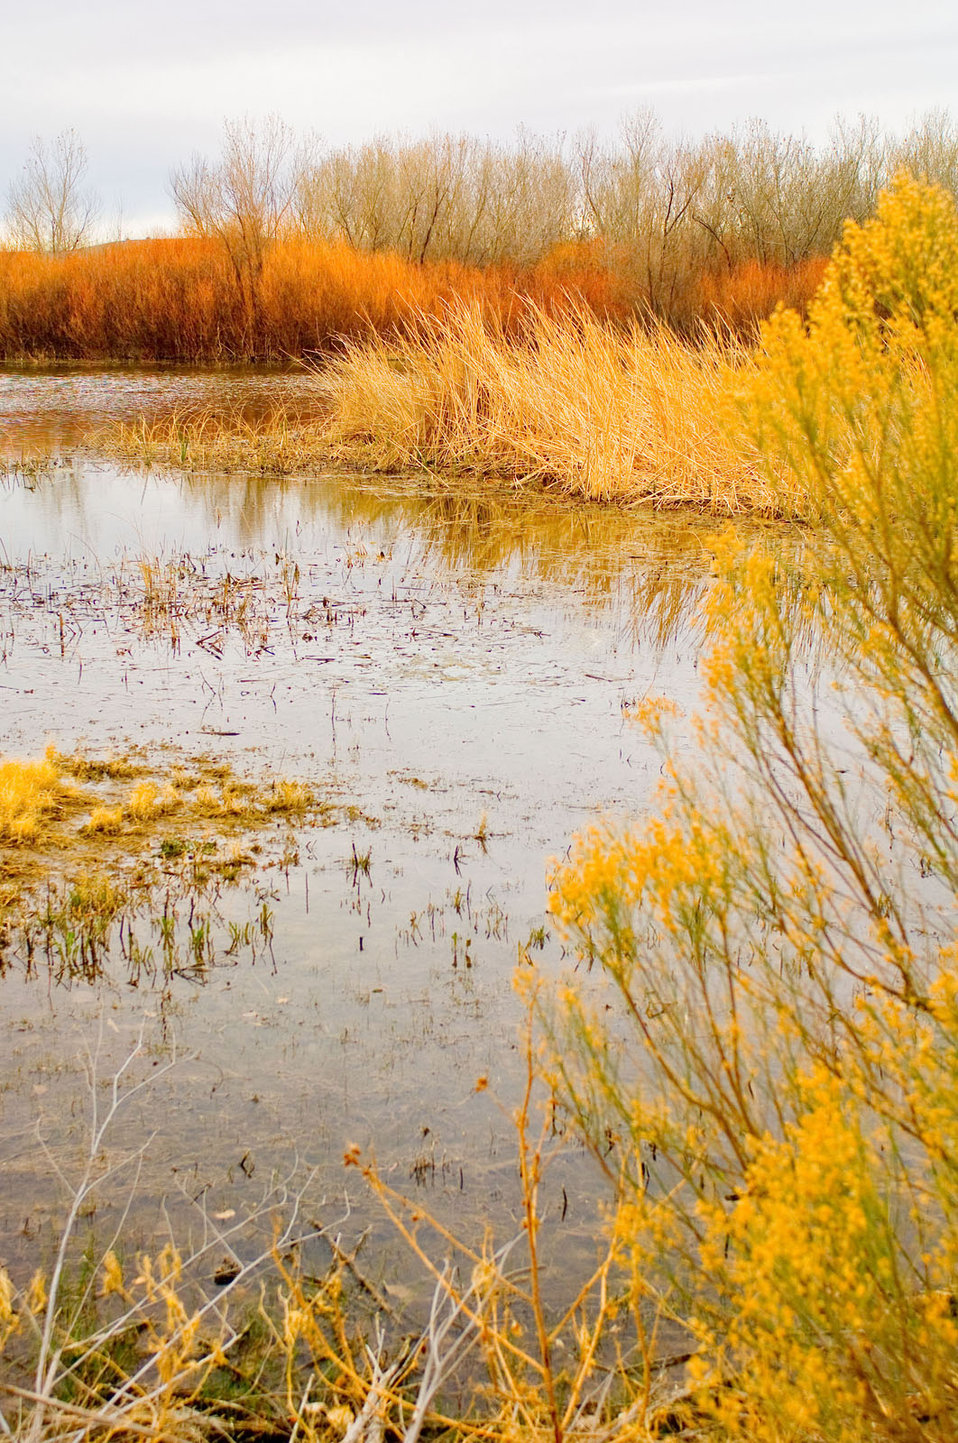 There are many types of wetlands